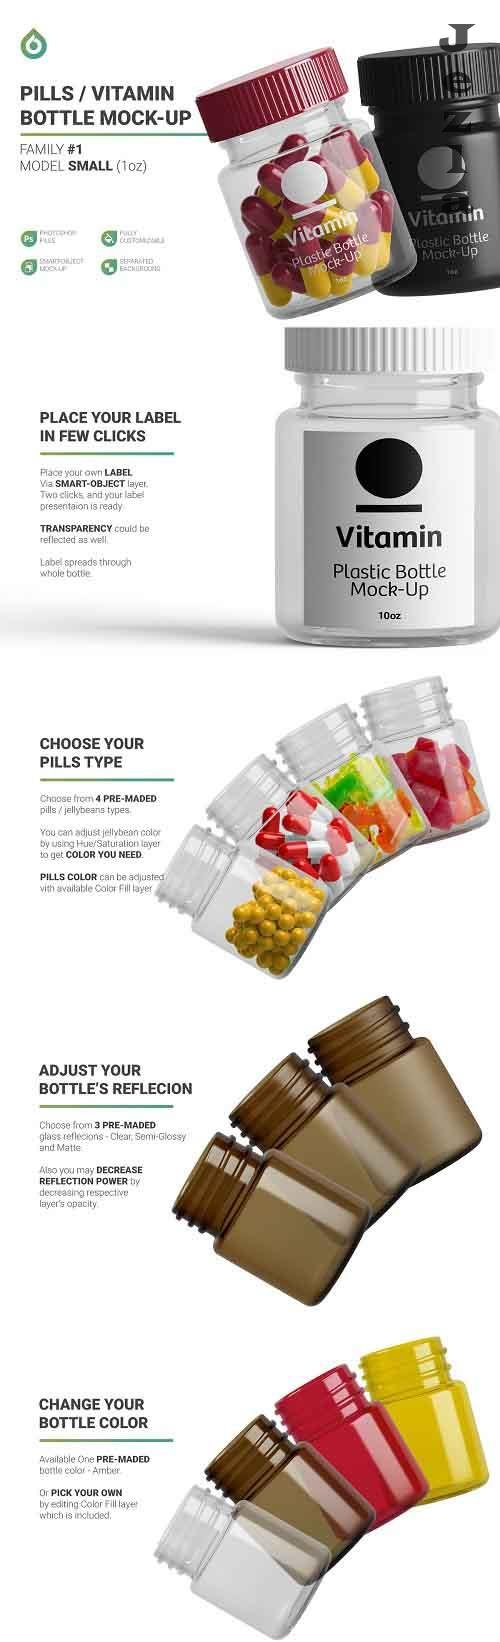 CreativeMarket - Vitamins Bottle Mockup 5263320